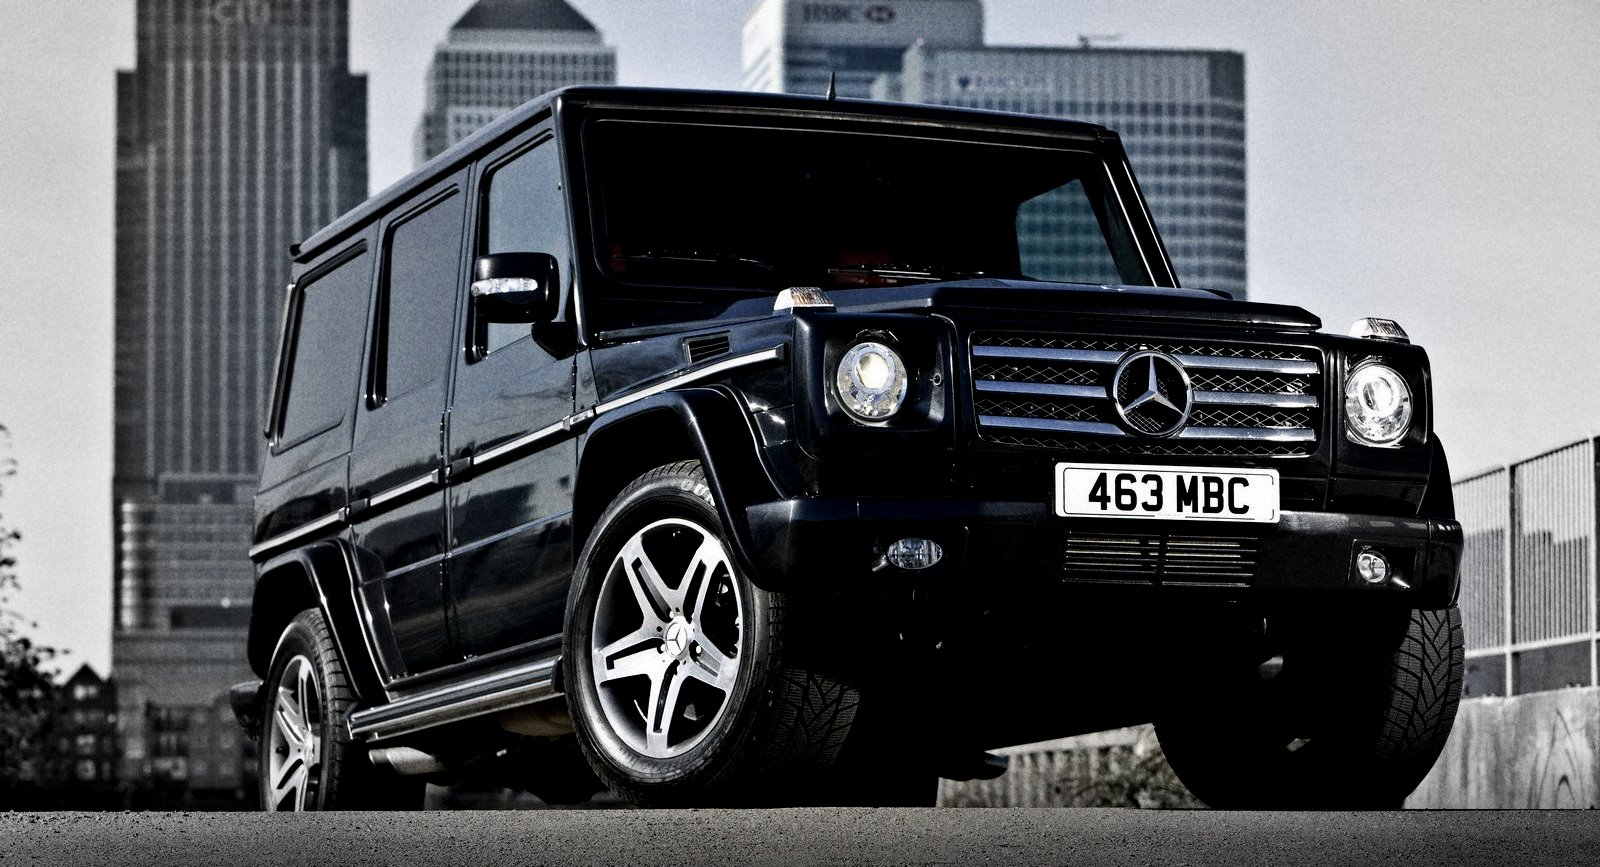 Cartopia car blog cartopia configurator latest news for Mercedes benz g class pictures